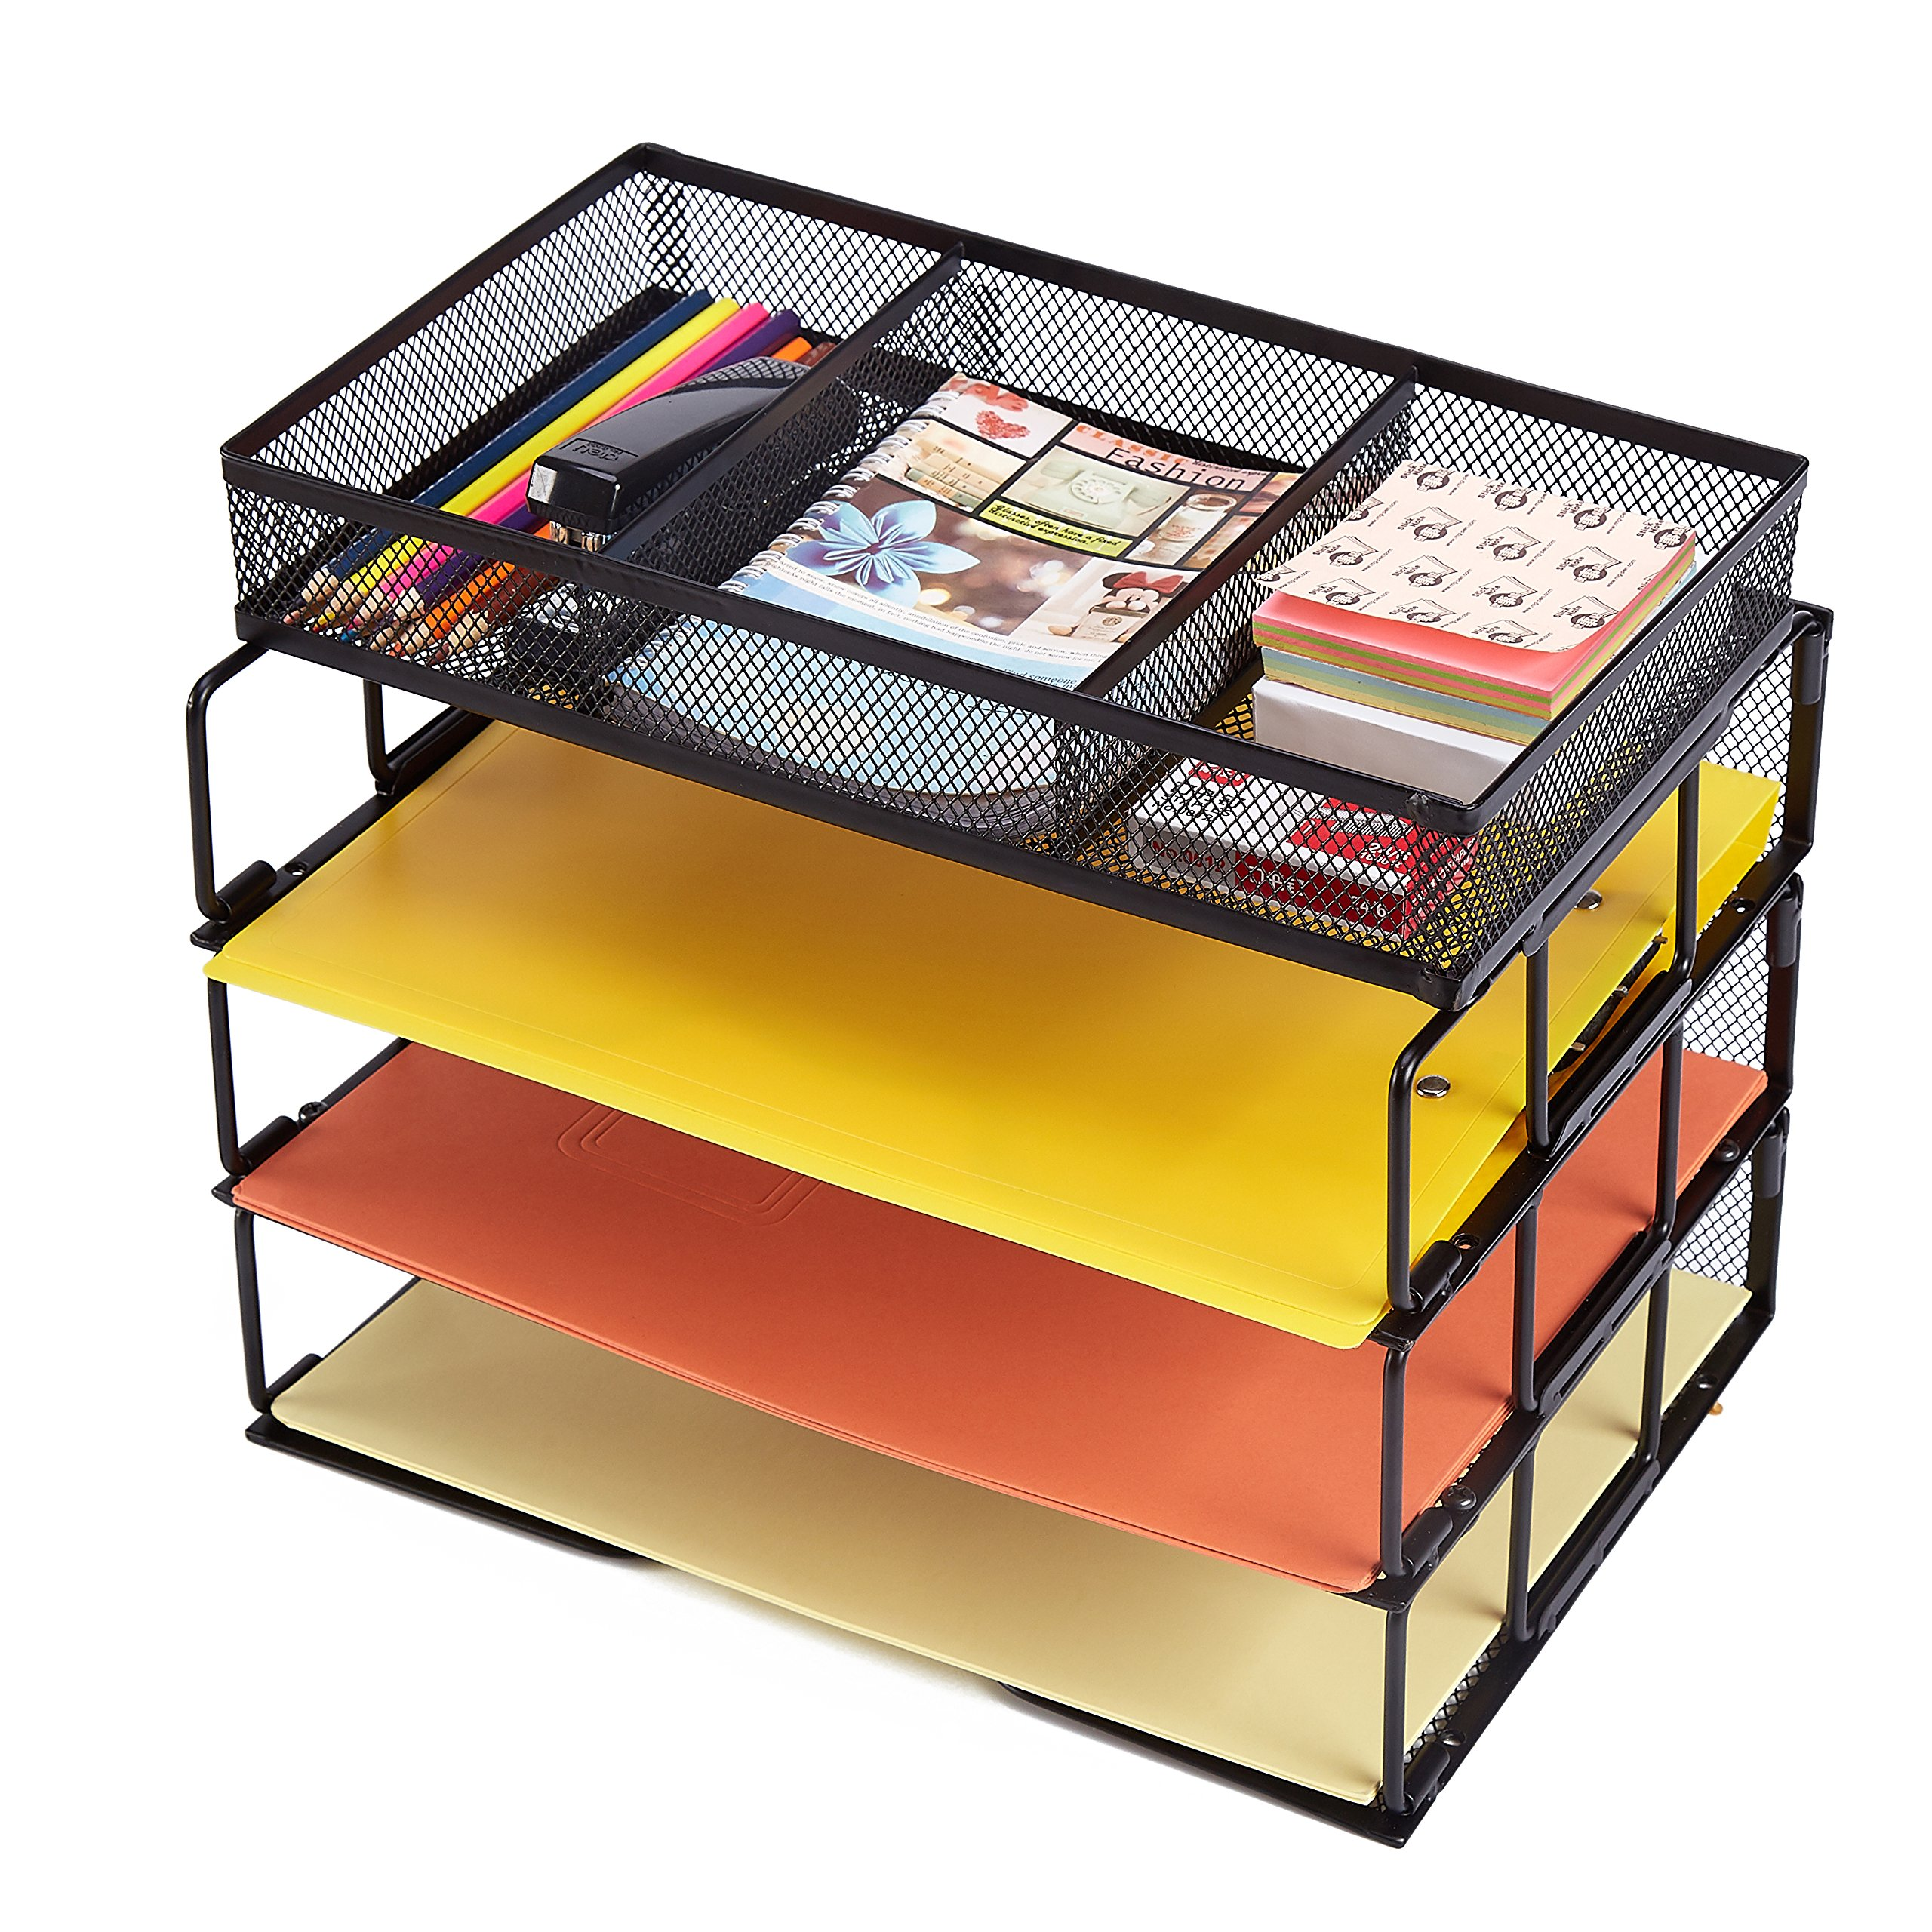 desk construction classroom paper pacon compartments organizer products storage keepers original